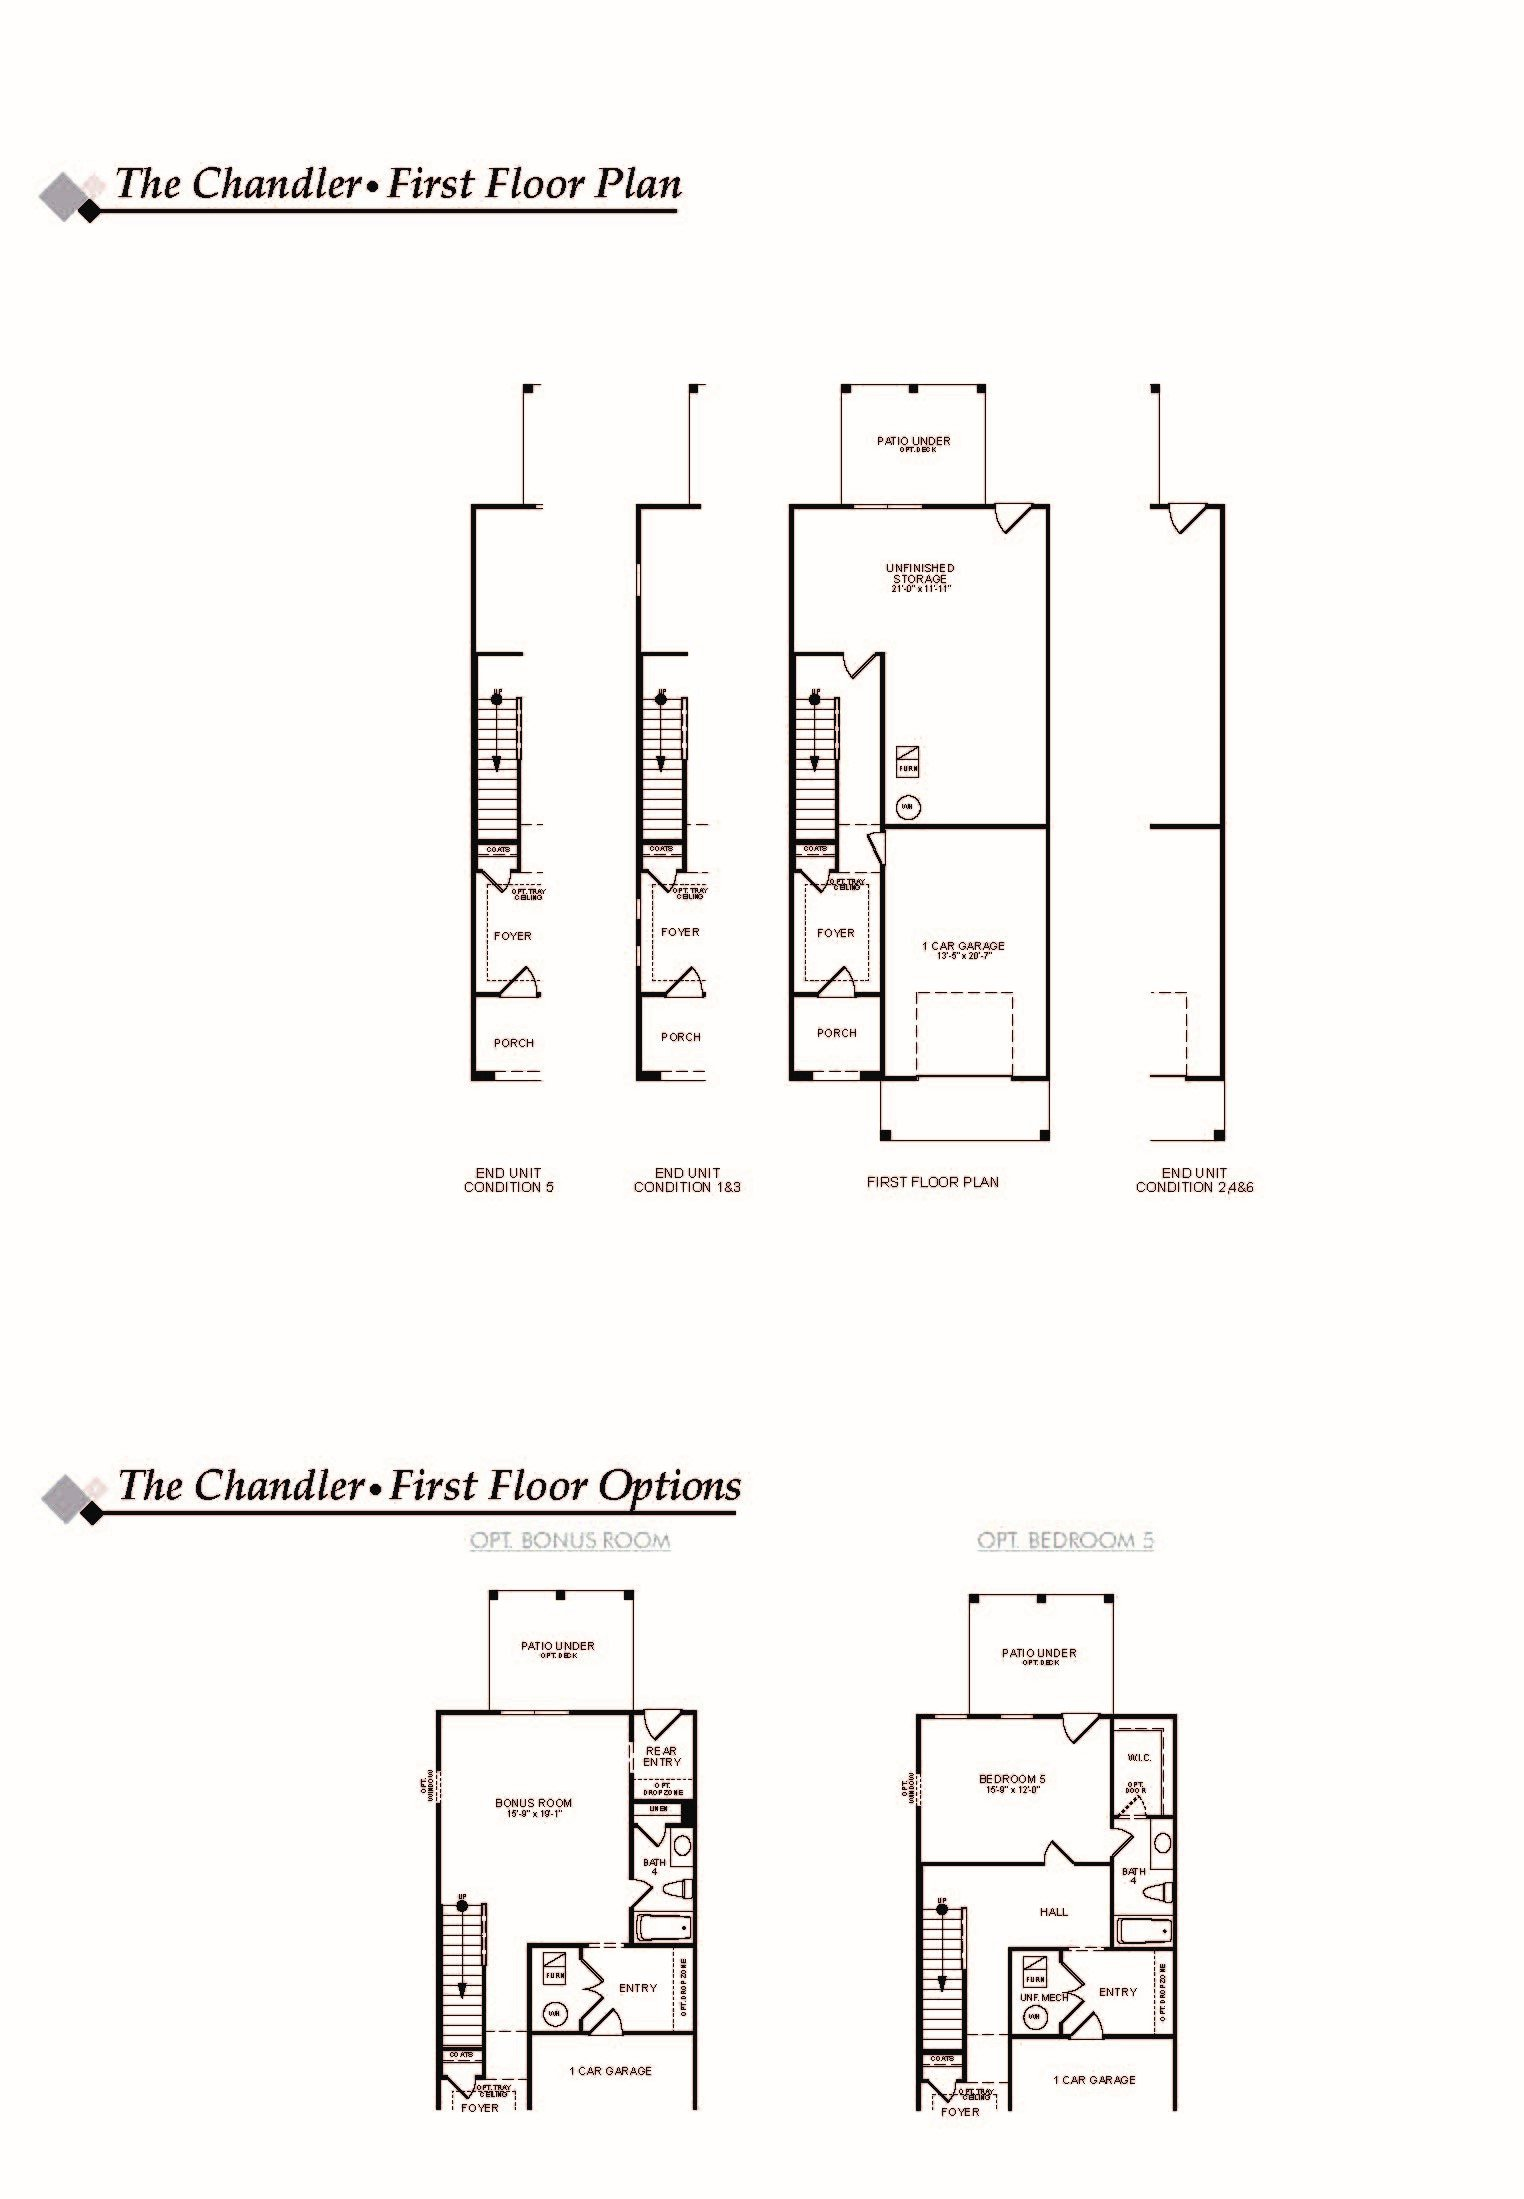 Chandler First Floor Image